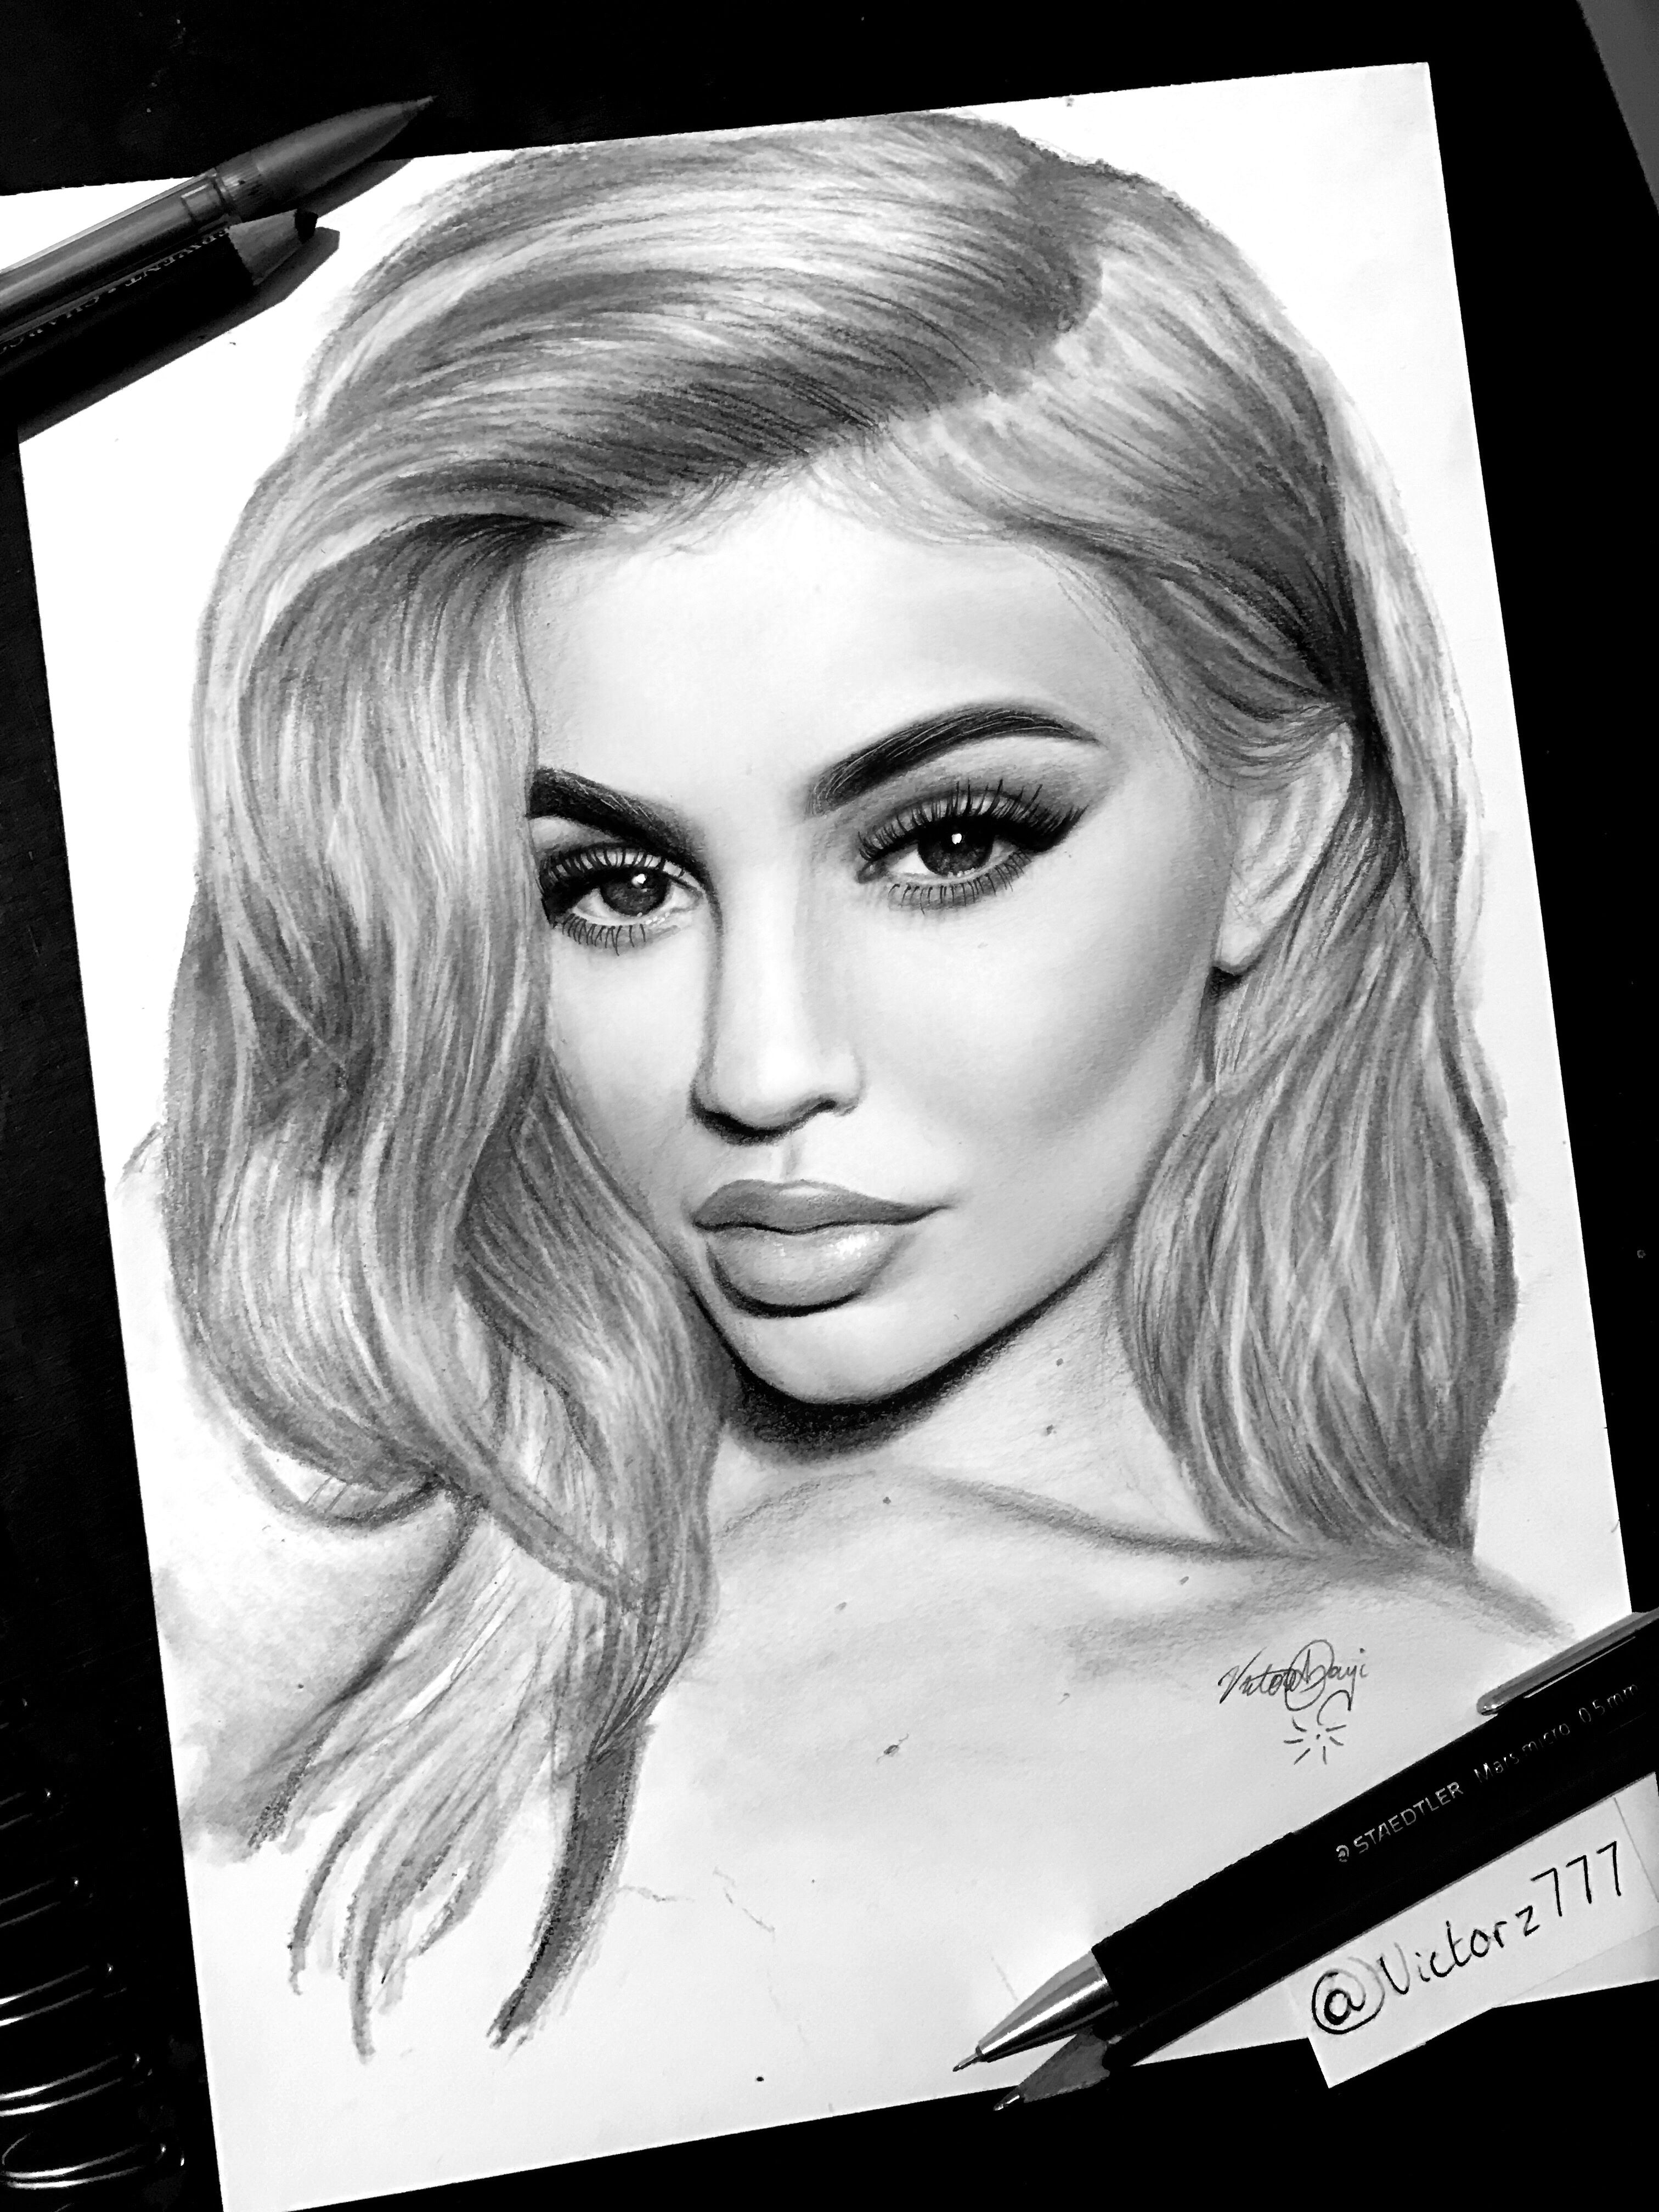 Kylie jenner graphite drawing